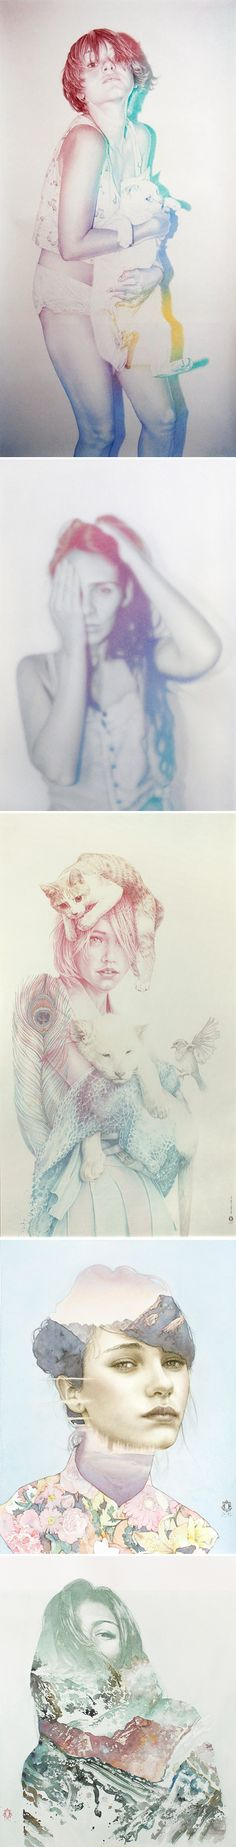 Spanish born, London-based artist Oriol Angrill Jordà  __ The first three pieces above were done using only colored pencils. The final two pieces are colored pencil and watercolor.